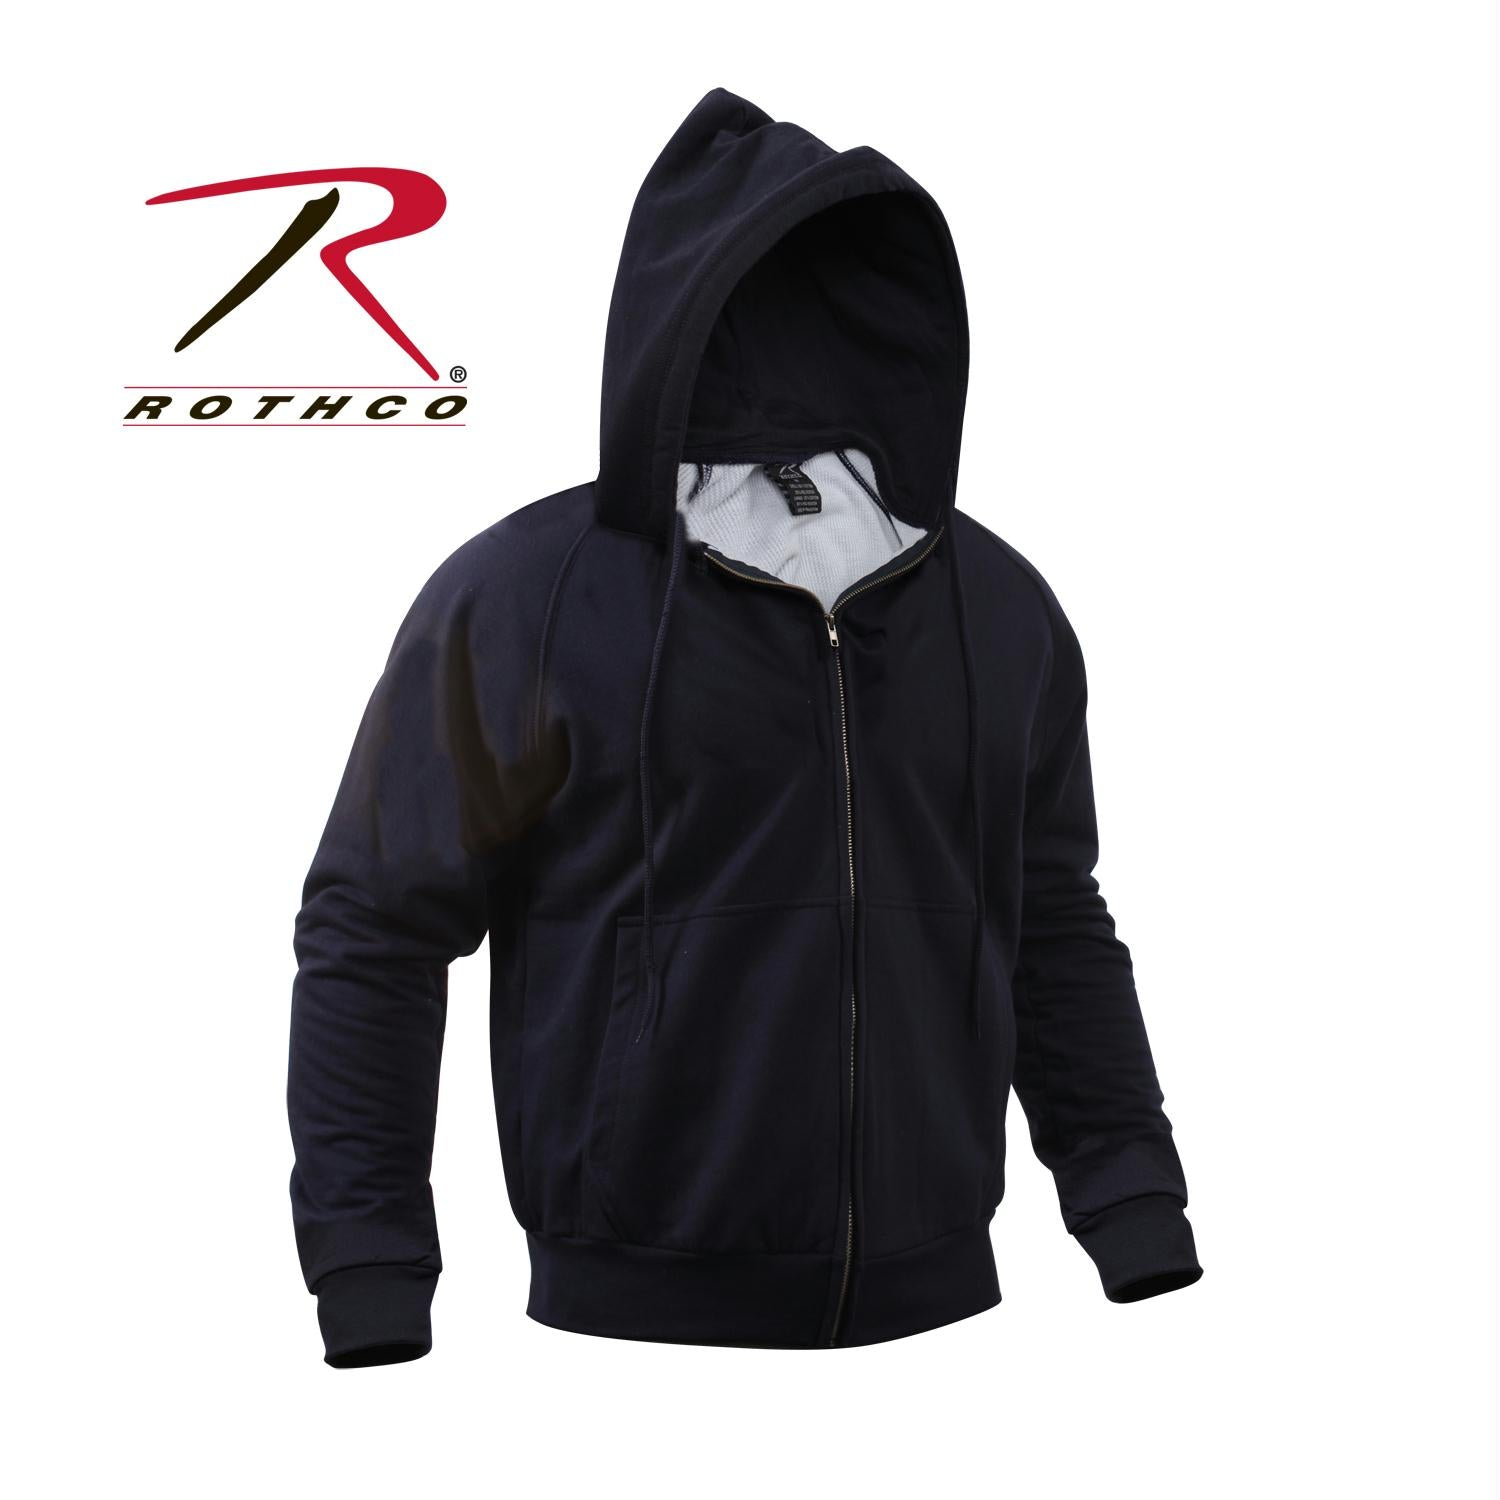 Rothco Thermal Lined Hooded Sweatshirt - Navy Blue / L